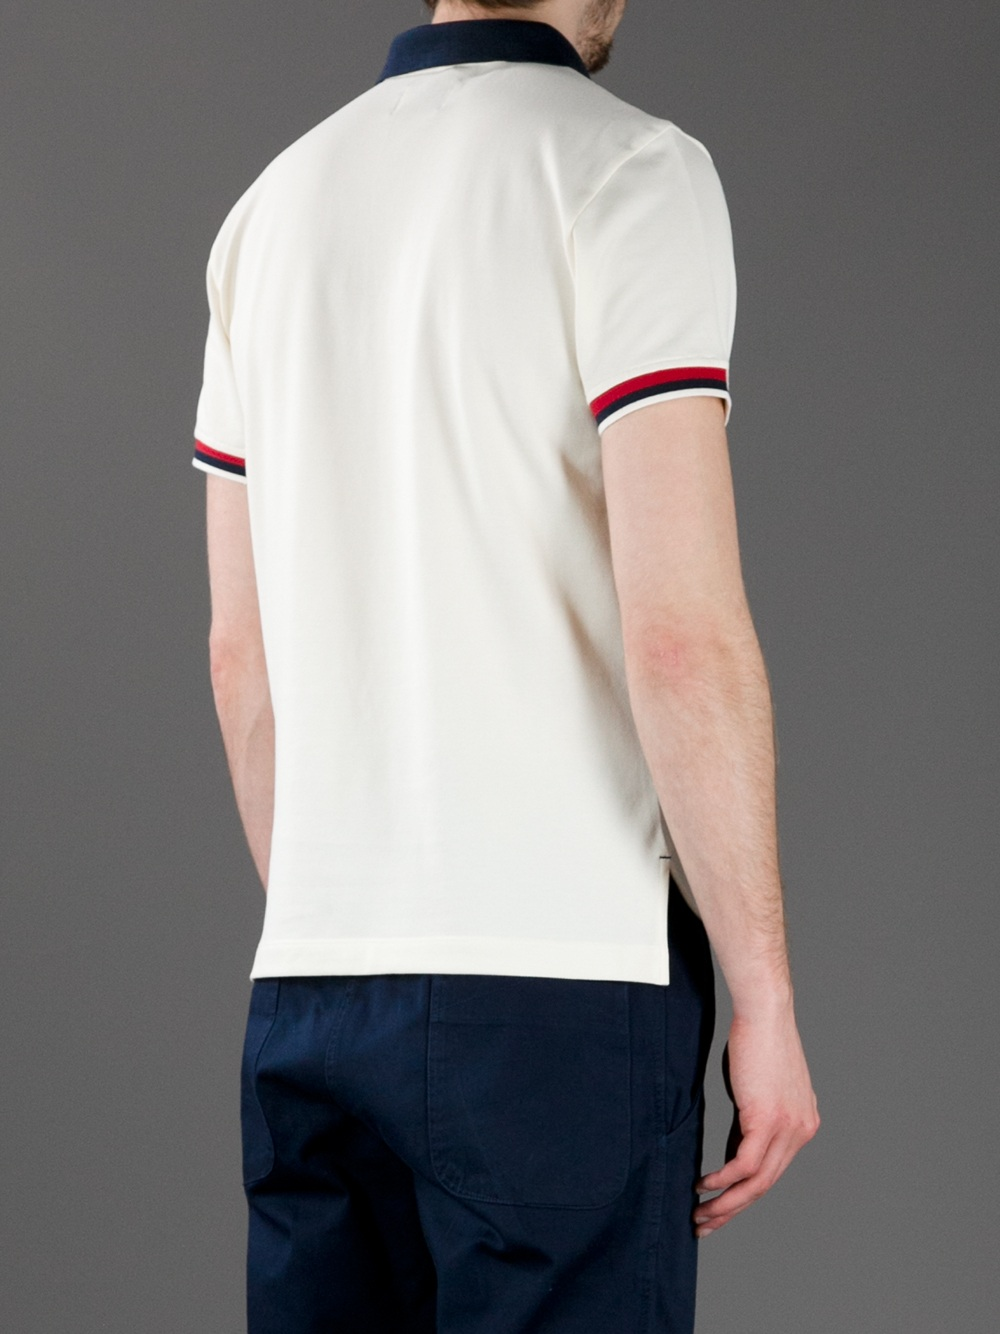 3 MONCLER GRENOBLE Polo Shirt in Cream (Natural) for Men